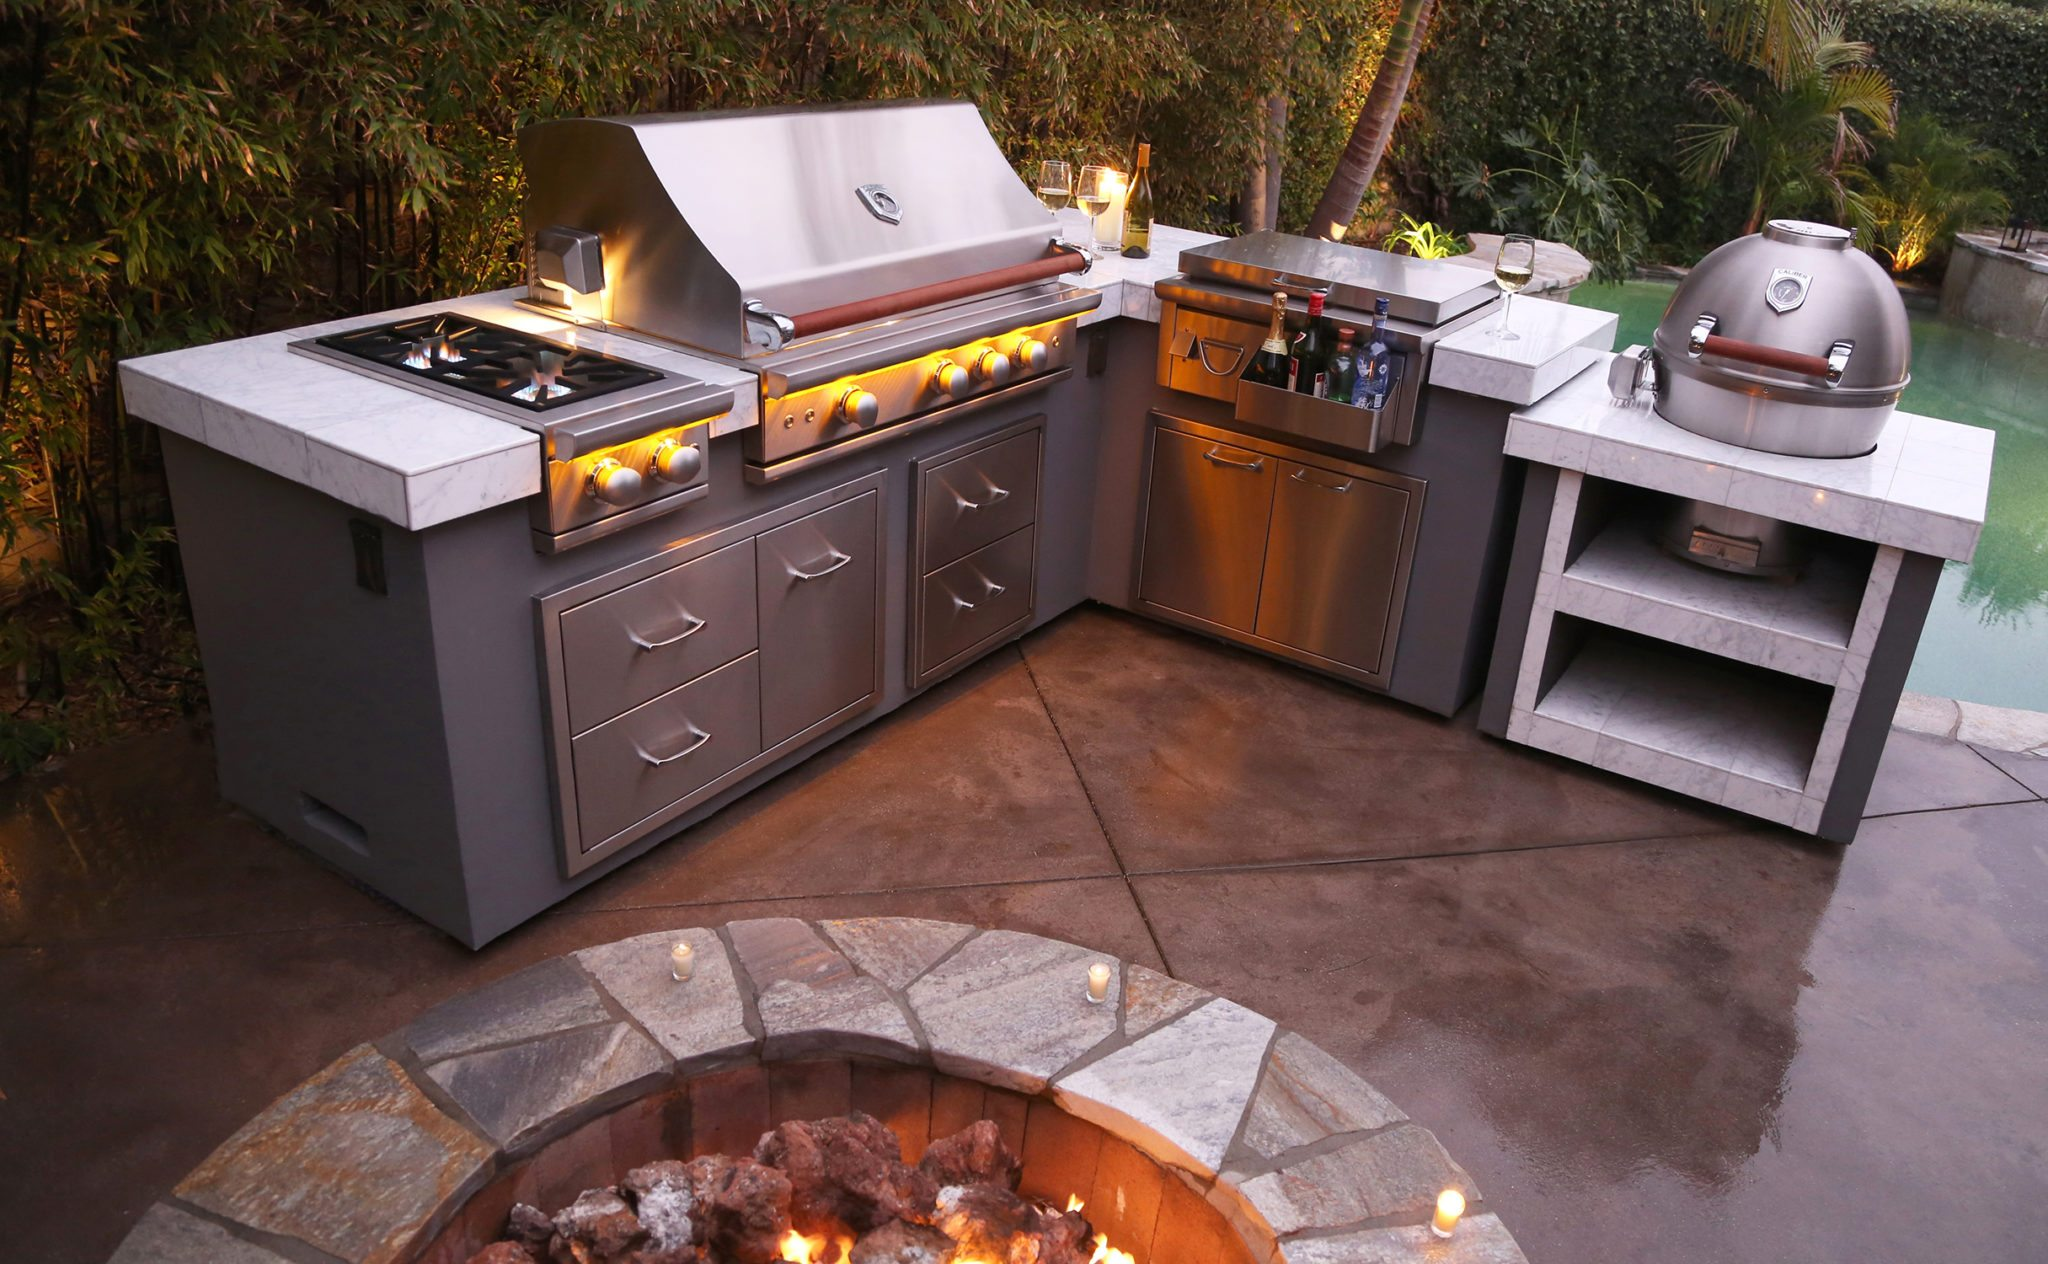 caliber professional grills outdoor kitchen